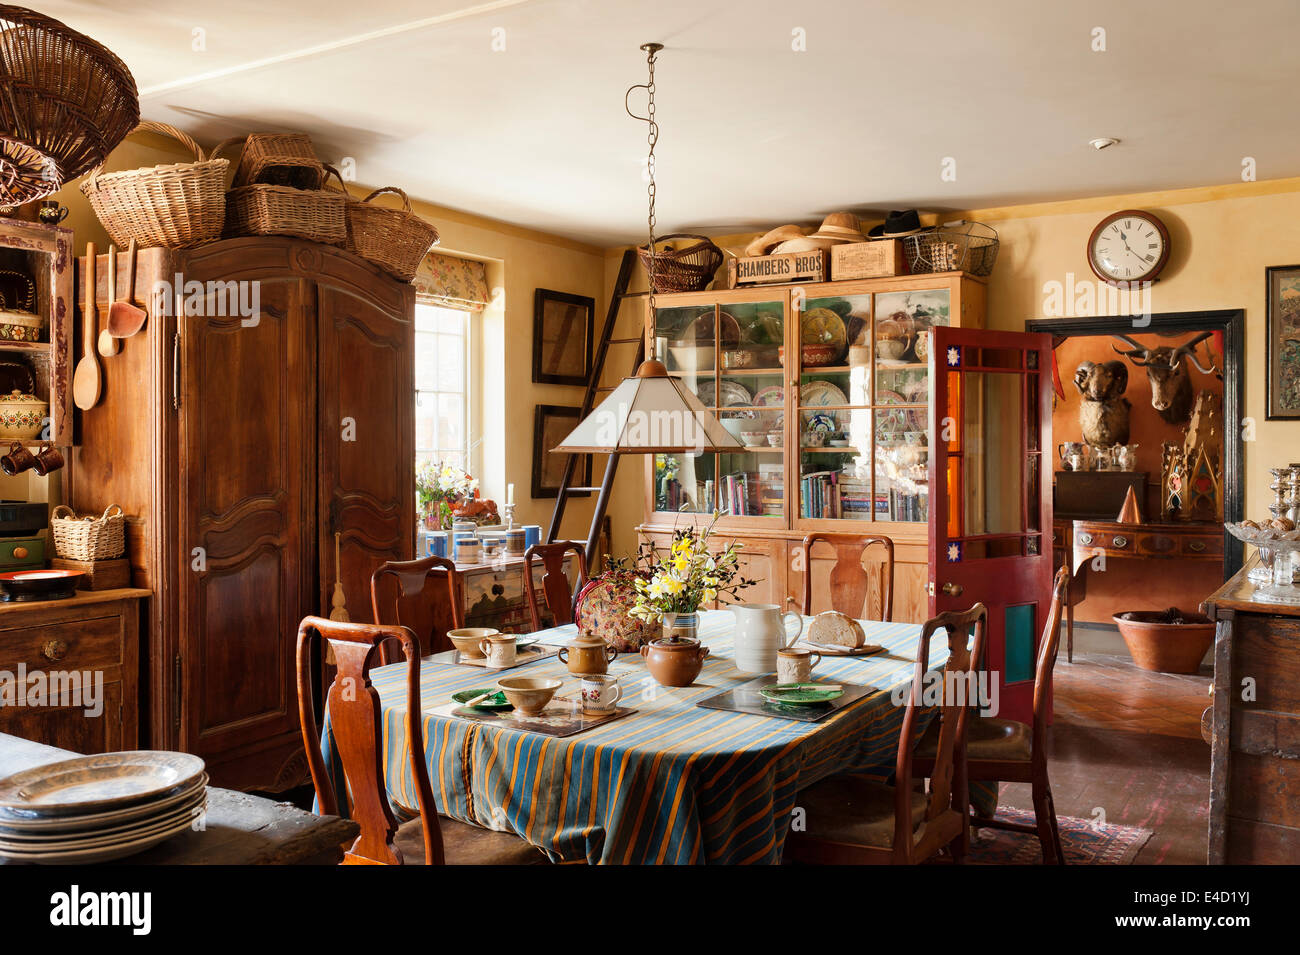 Charming Country Kitchen Stuffed With Antiques. Wicker Baskets Are Piled On  Top Of A Large Armoire And Tea And Bread Are Laid On